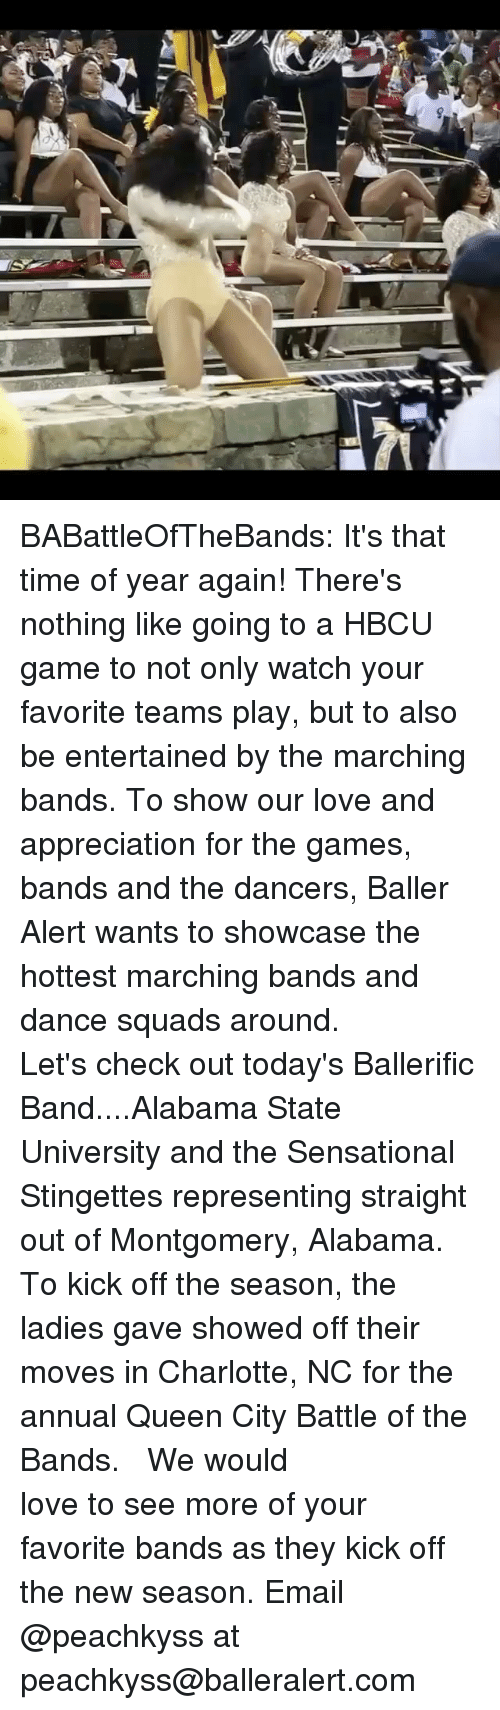 Baller Alert, Love, and Memes: BABattleOfTheBands: It's that time of year again! There's nothing like going to a HBCU game to not only watch your favorite teams play, but to also be entertained by the marching bands. To show our love and appreciation for the games, bands and the dancers, Baller Alert wants to showcase the hottest marching bands and dance squads around. ⠀⠀⠀ ⠀⠀⠀⠀⠀⠀⠀ Let's check out today's Ballerific Band....Alabama State University and the Sensational Stingettes representing straight out of Montgomery, Alabama. To kick off the season, the ladies gave showed off their moves in Charlotte, NC for the annual Queen City Battle of the Bands. ⠀⠀⠀⠀⠀⠀⠀ ⠀⠀⠀⠀⠀⠀⠀ We would love to see more of your favorite bands as they kick off the new season. Email @peachkyss at peachkyss@balleralert.com